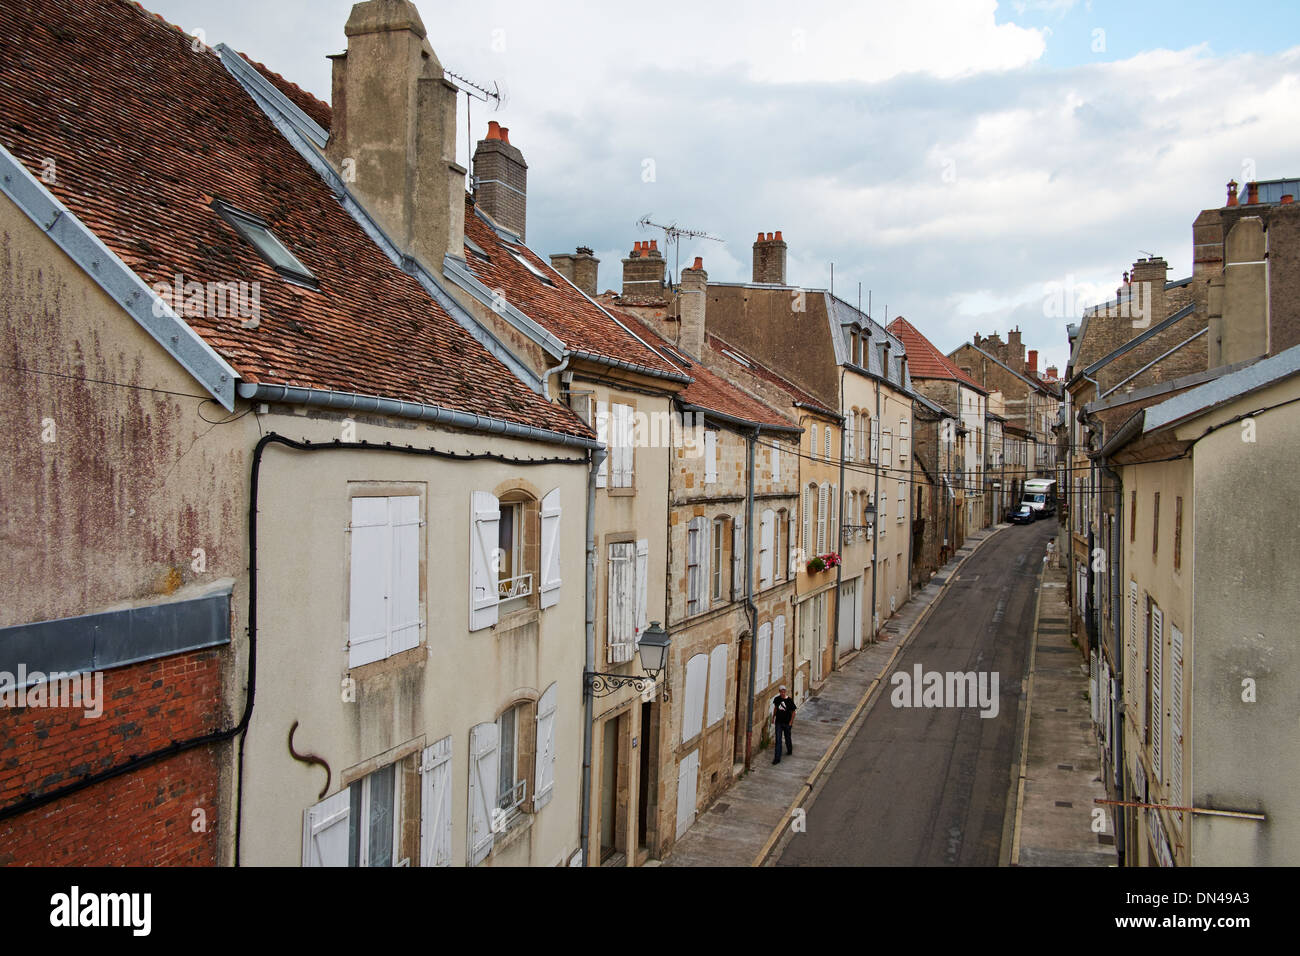 Townscape Langres, France - Stock Image